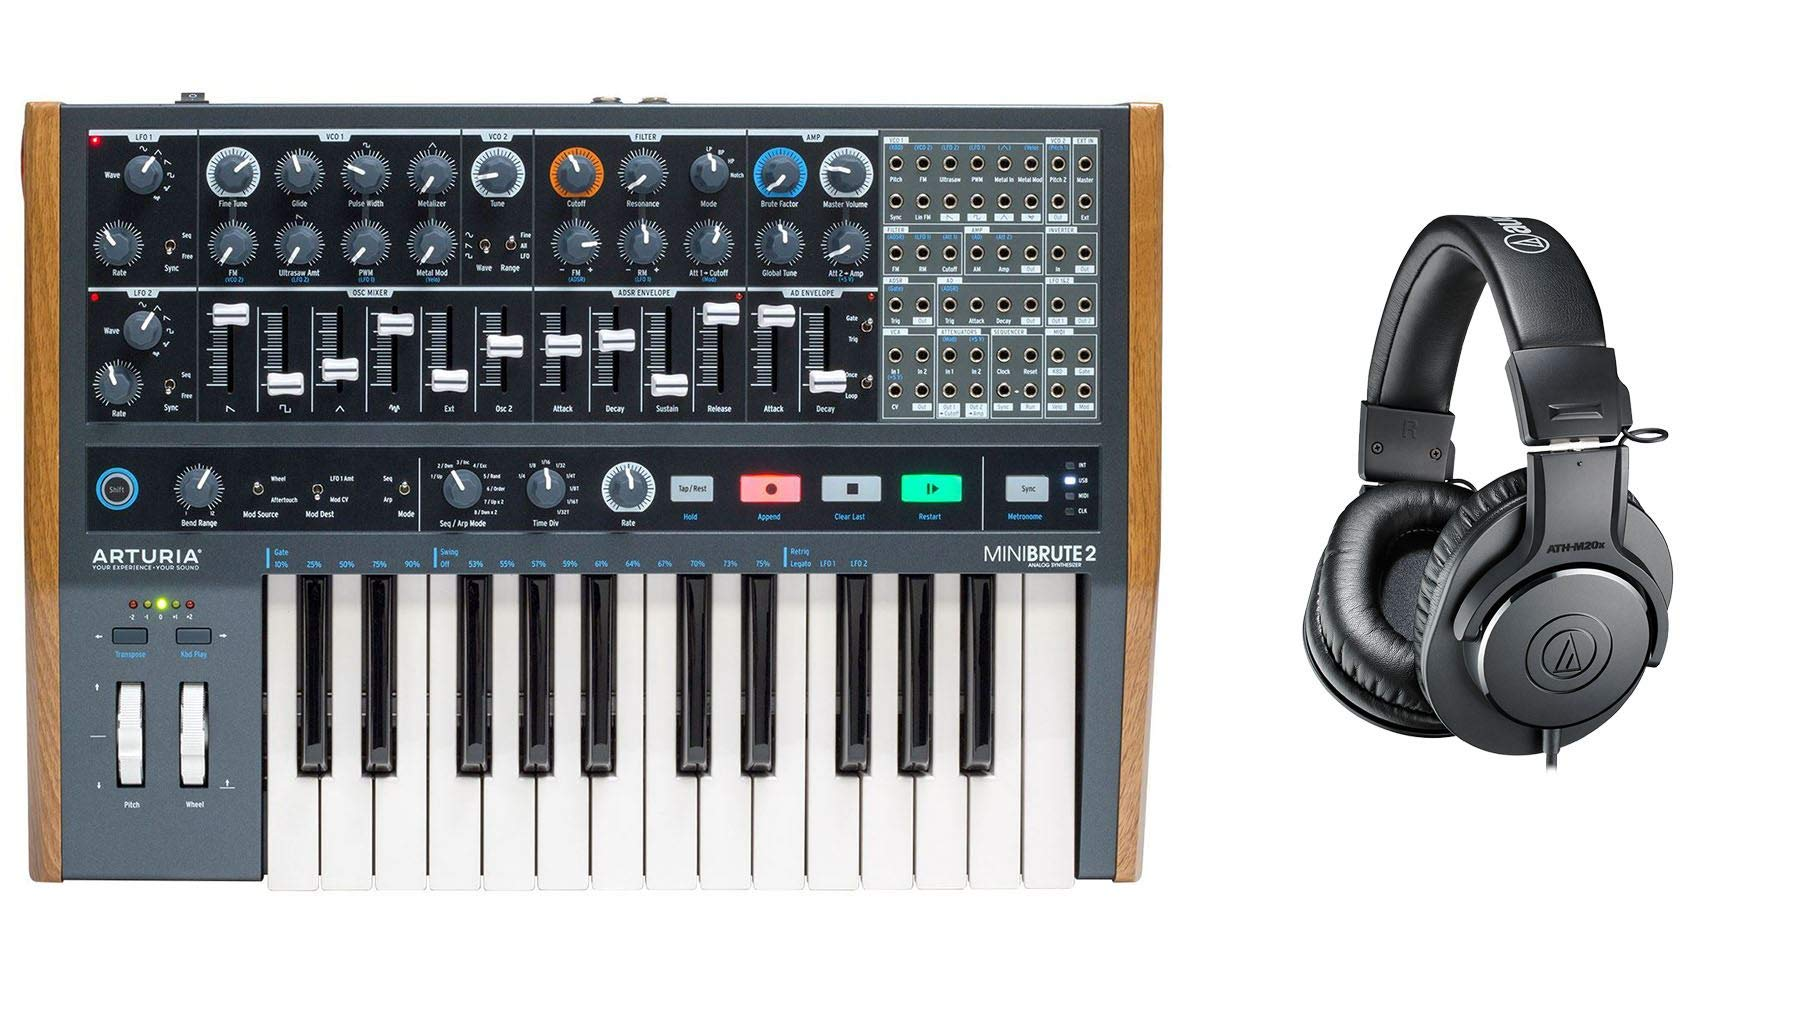 Arturia Minibrute 2 Synthesizer Bundle with Audio-Technica ATH-M20x Headphones (2 Items)